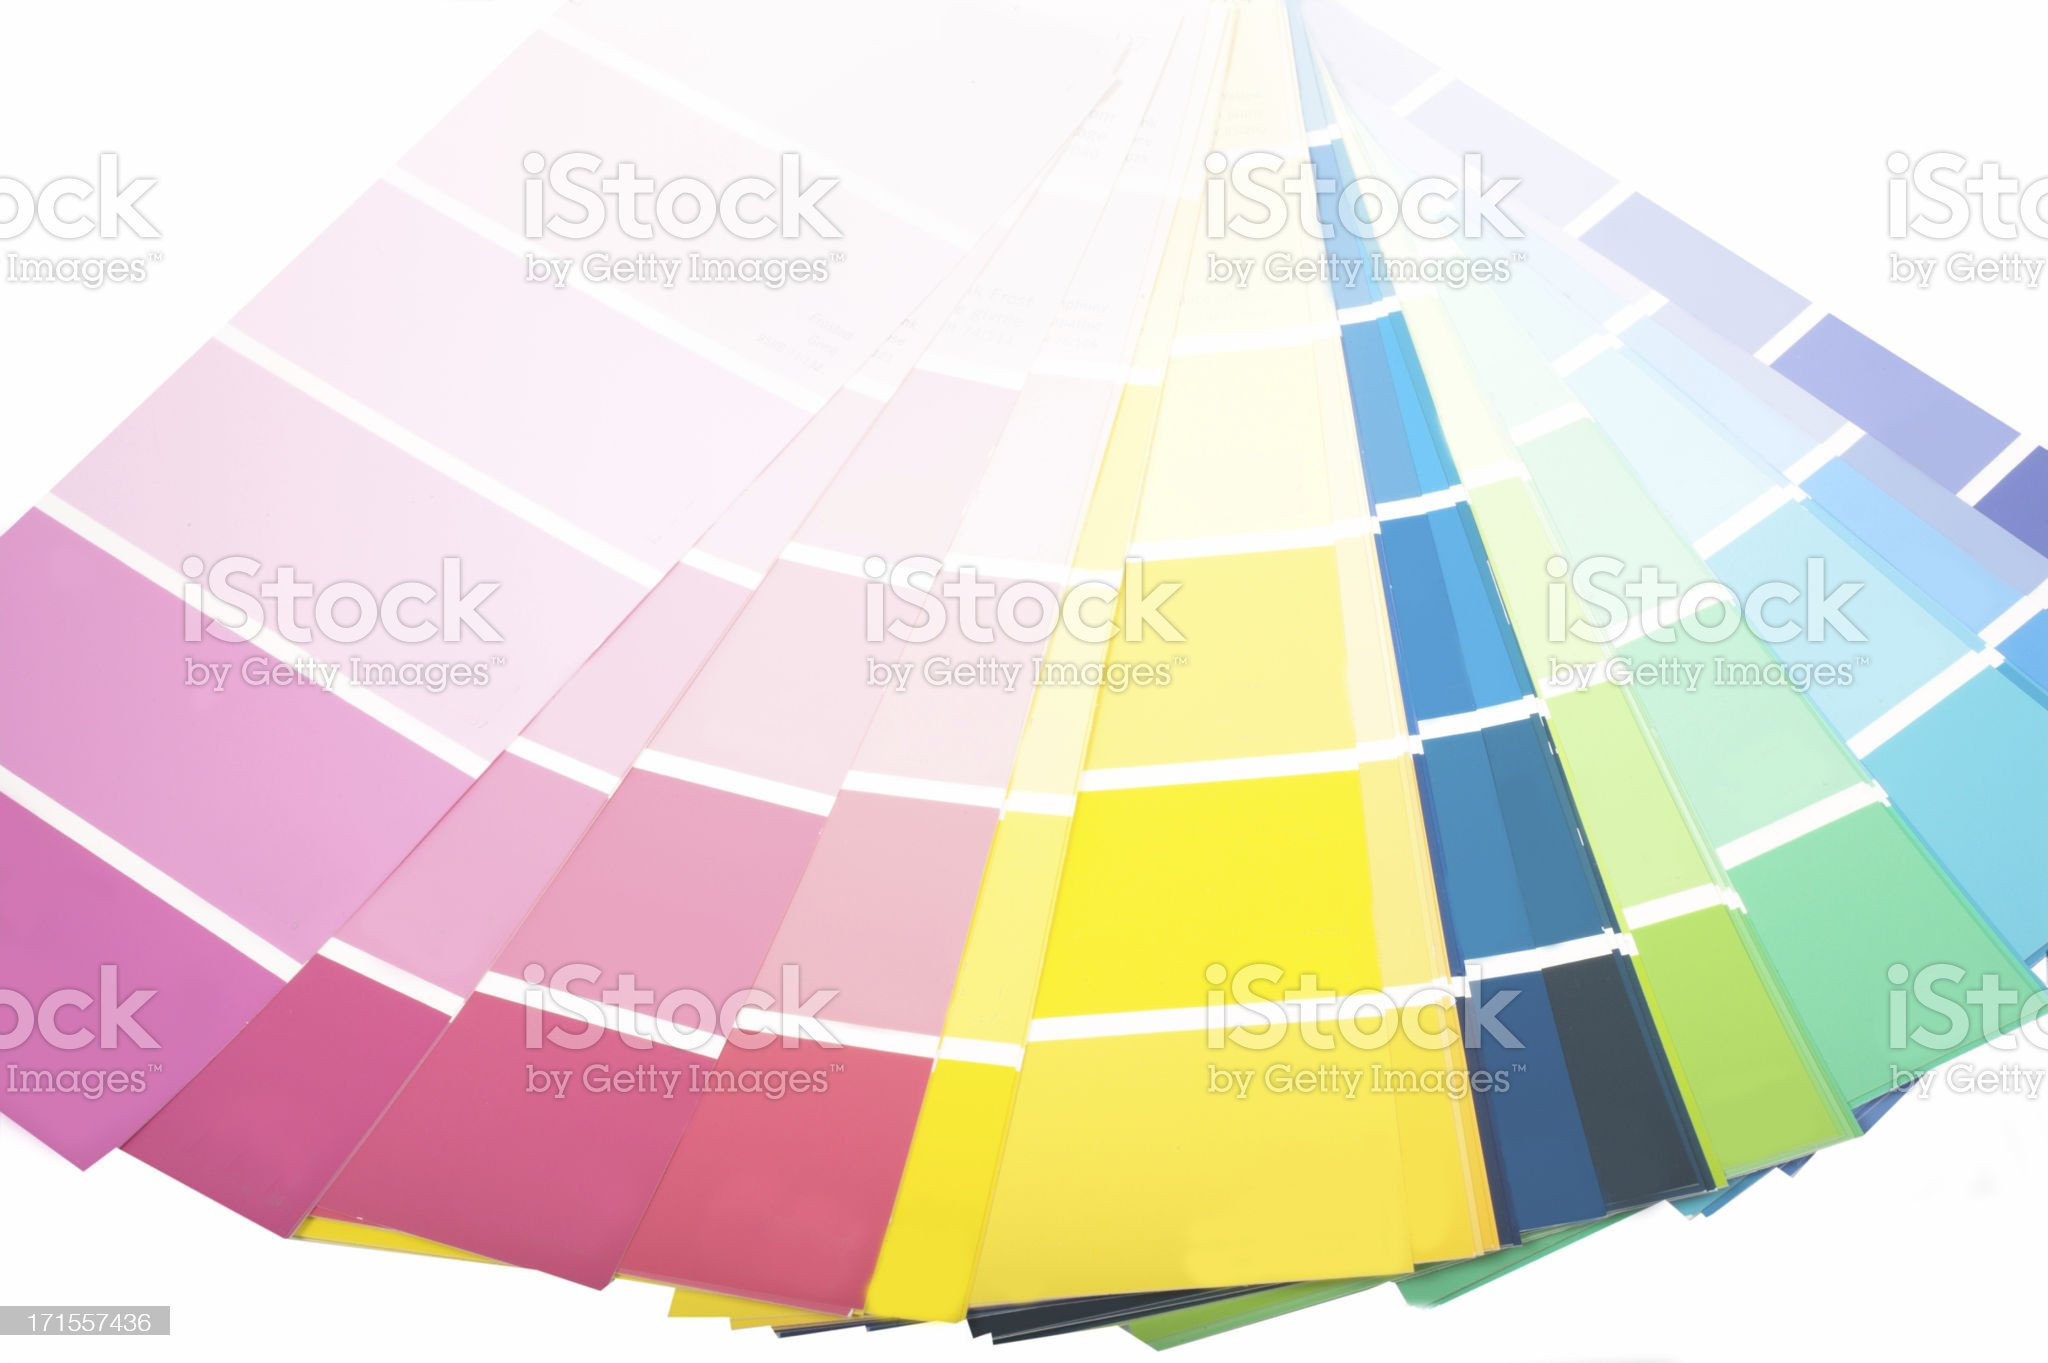 Colour swatches royalty-free stock photo